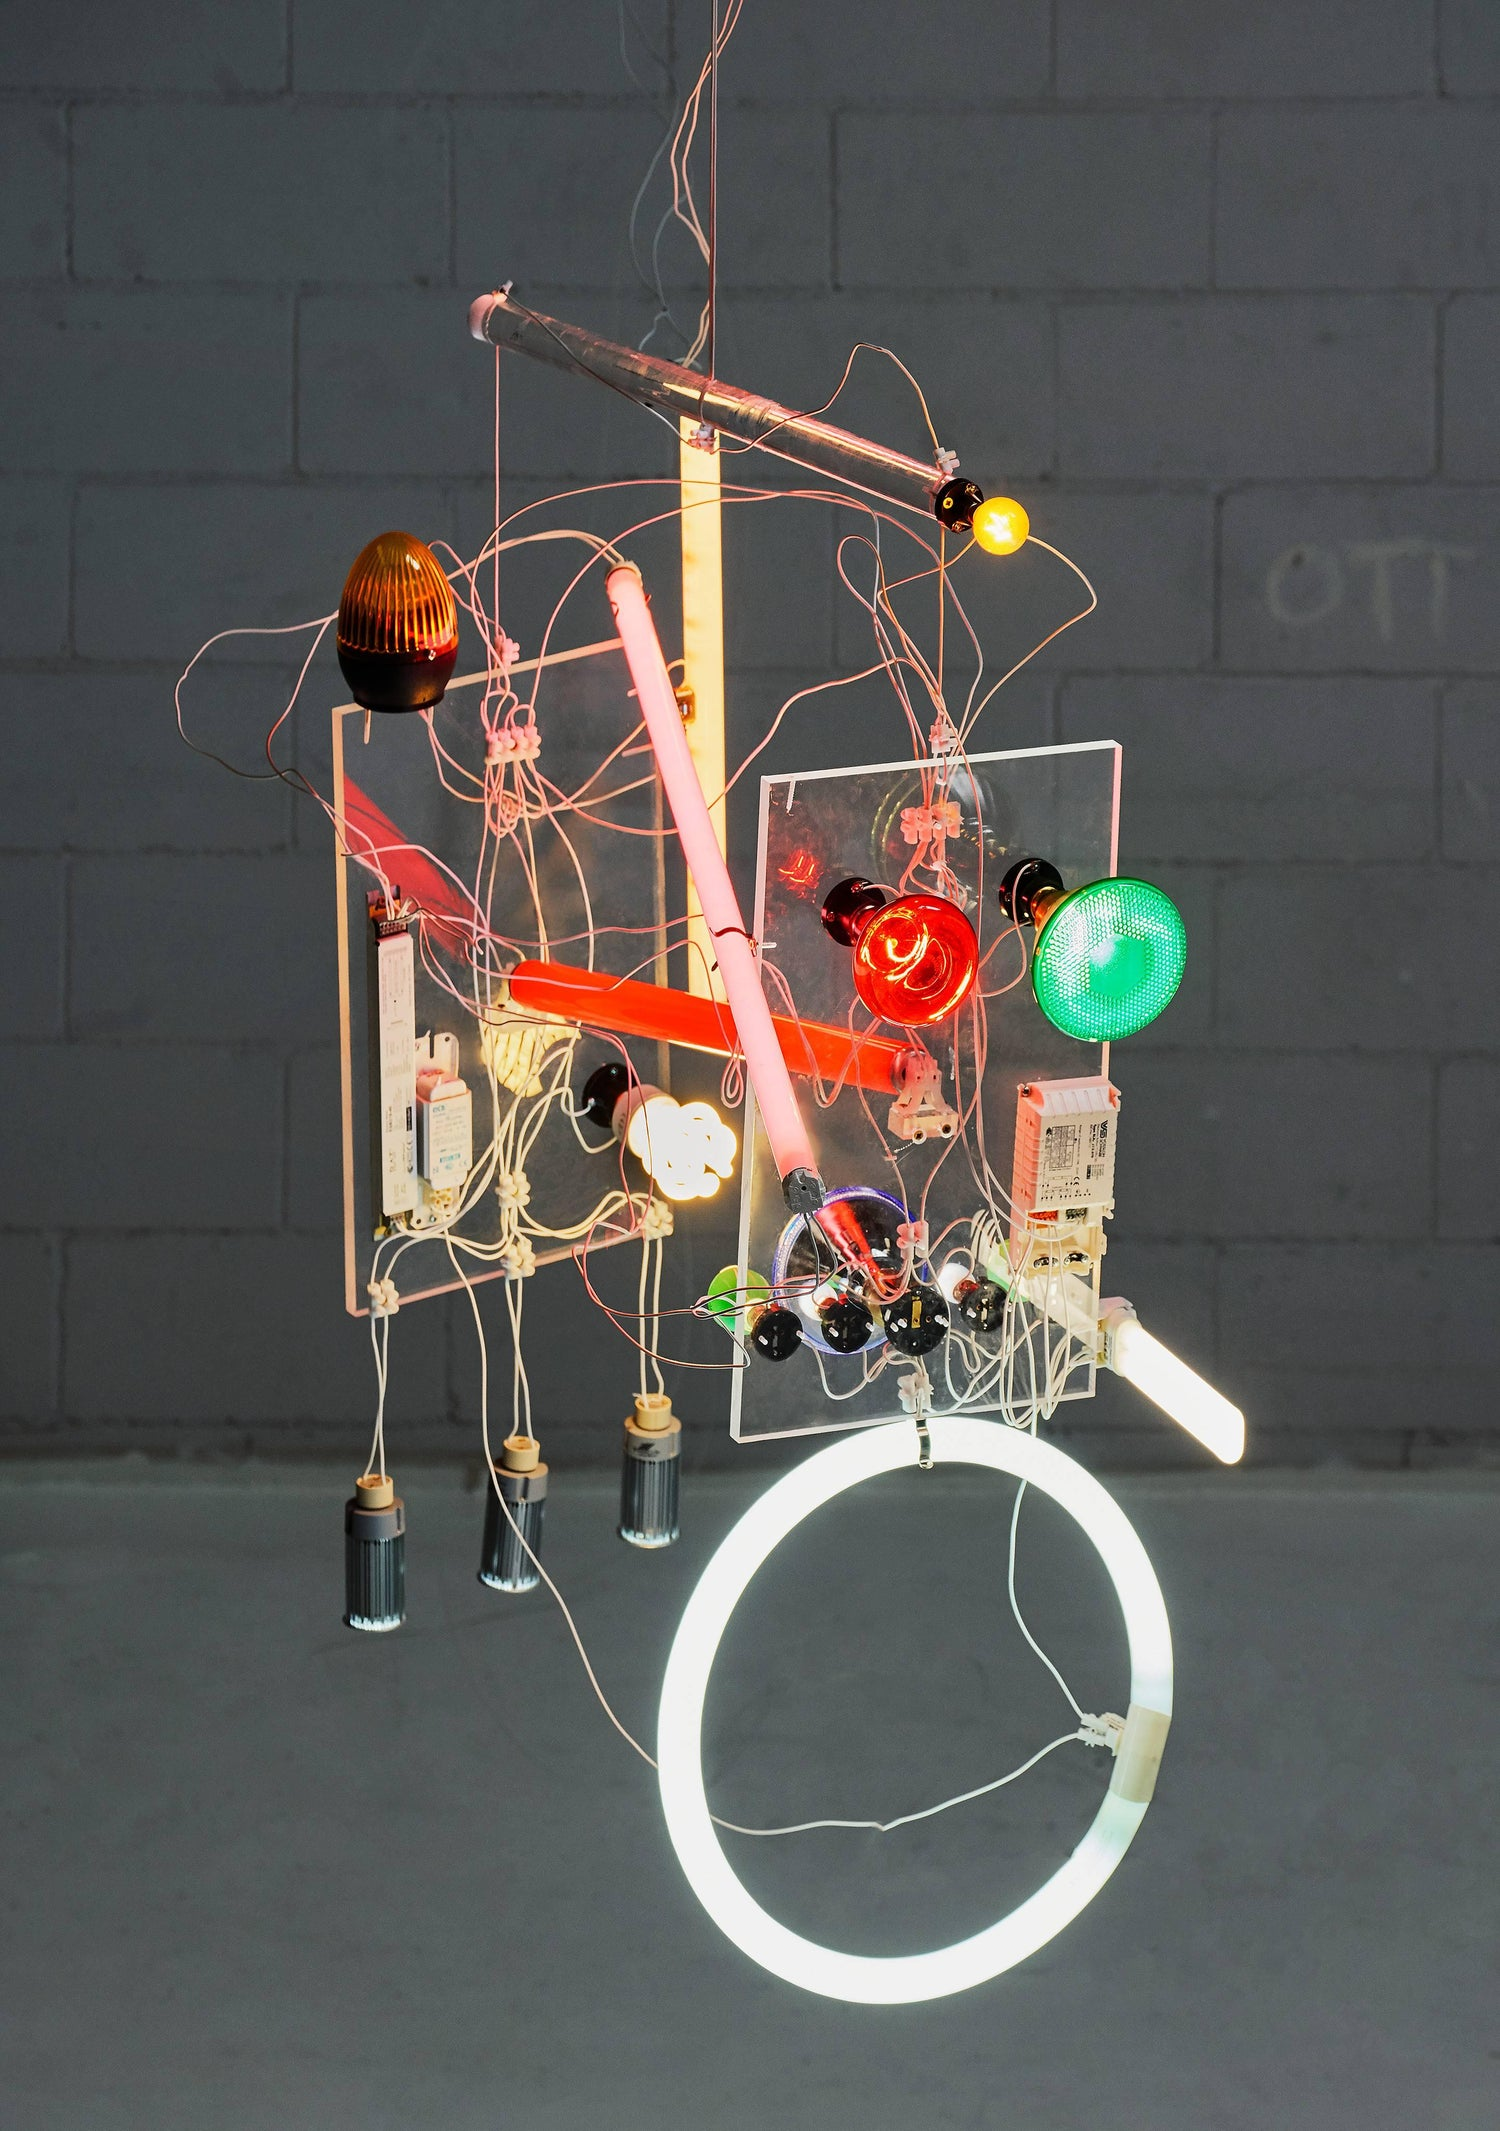 Chandelier By Guillermo Santoma At 1stdibs Wiring Harness